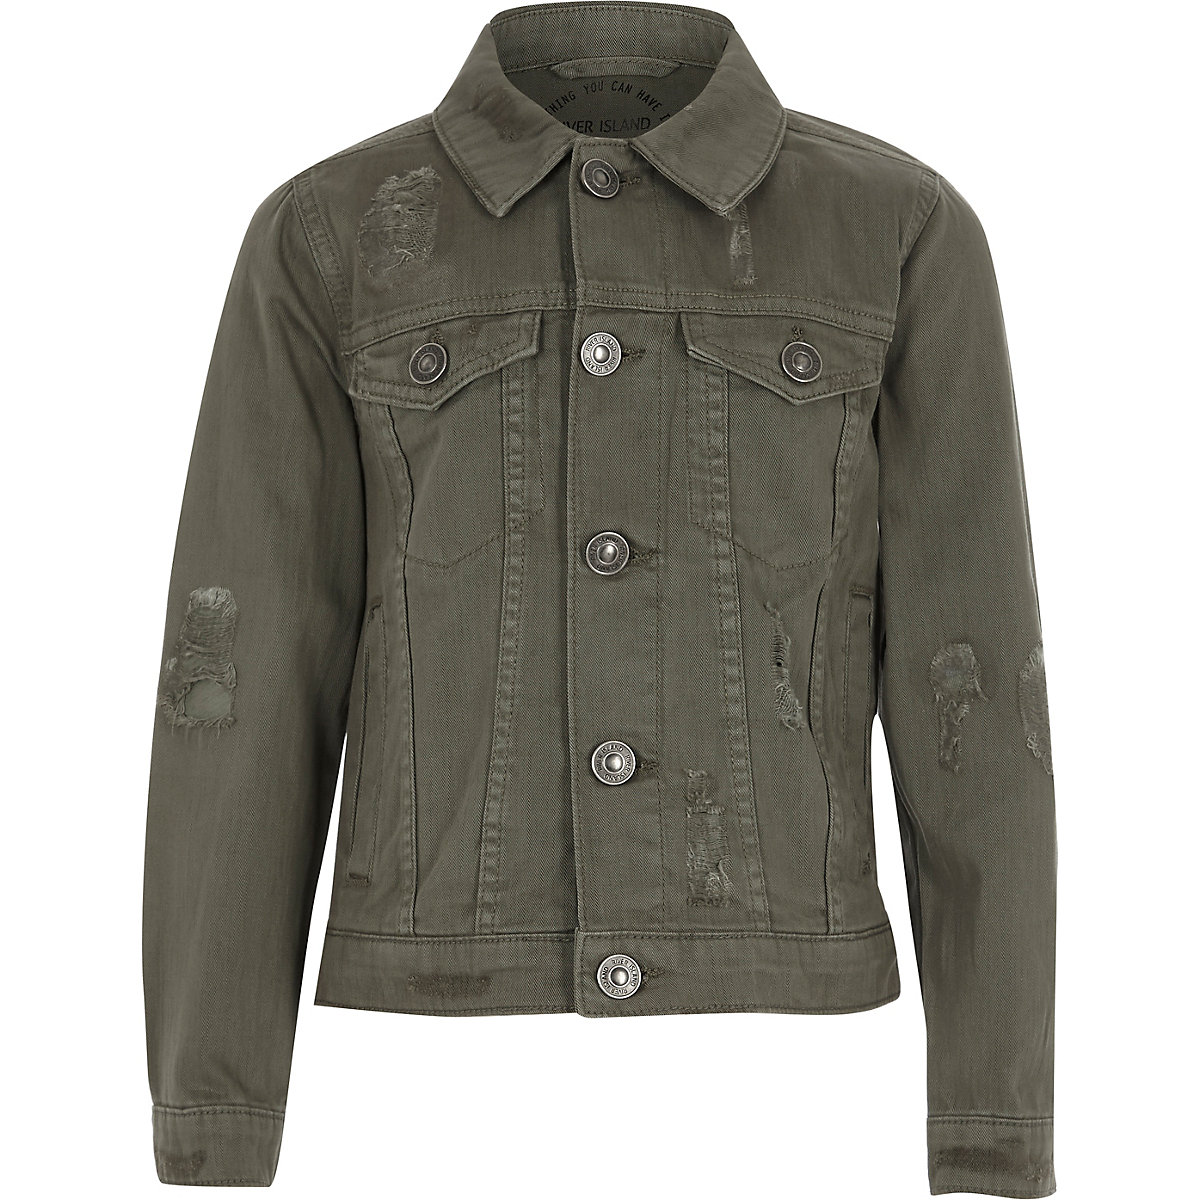 Boys khaki denim trucker jacket